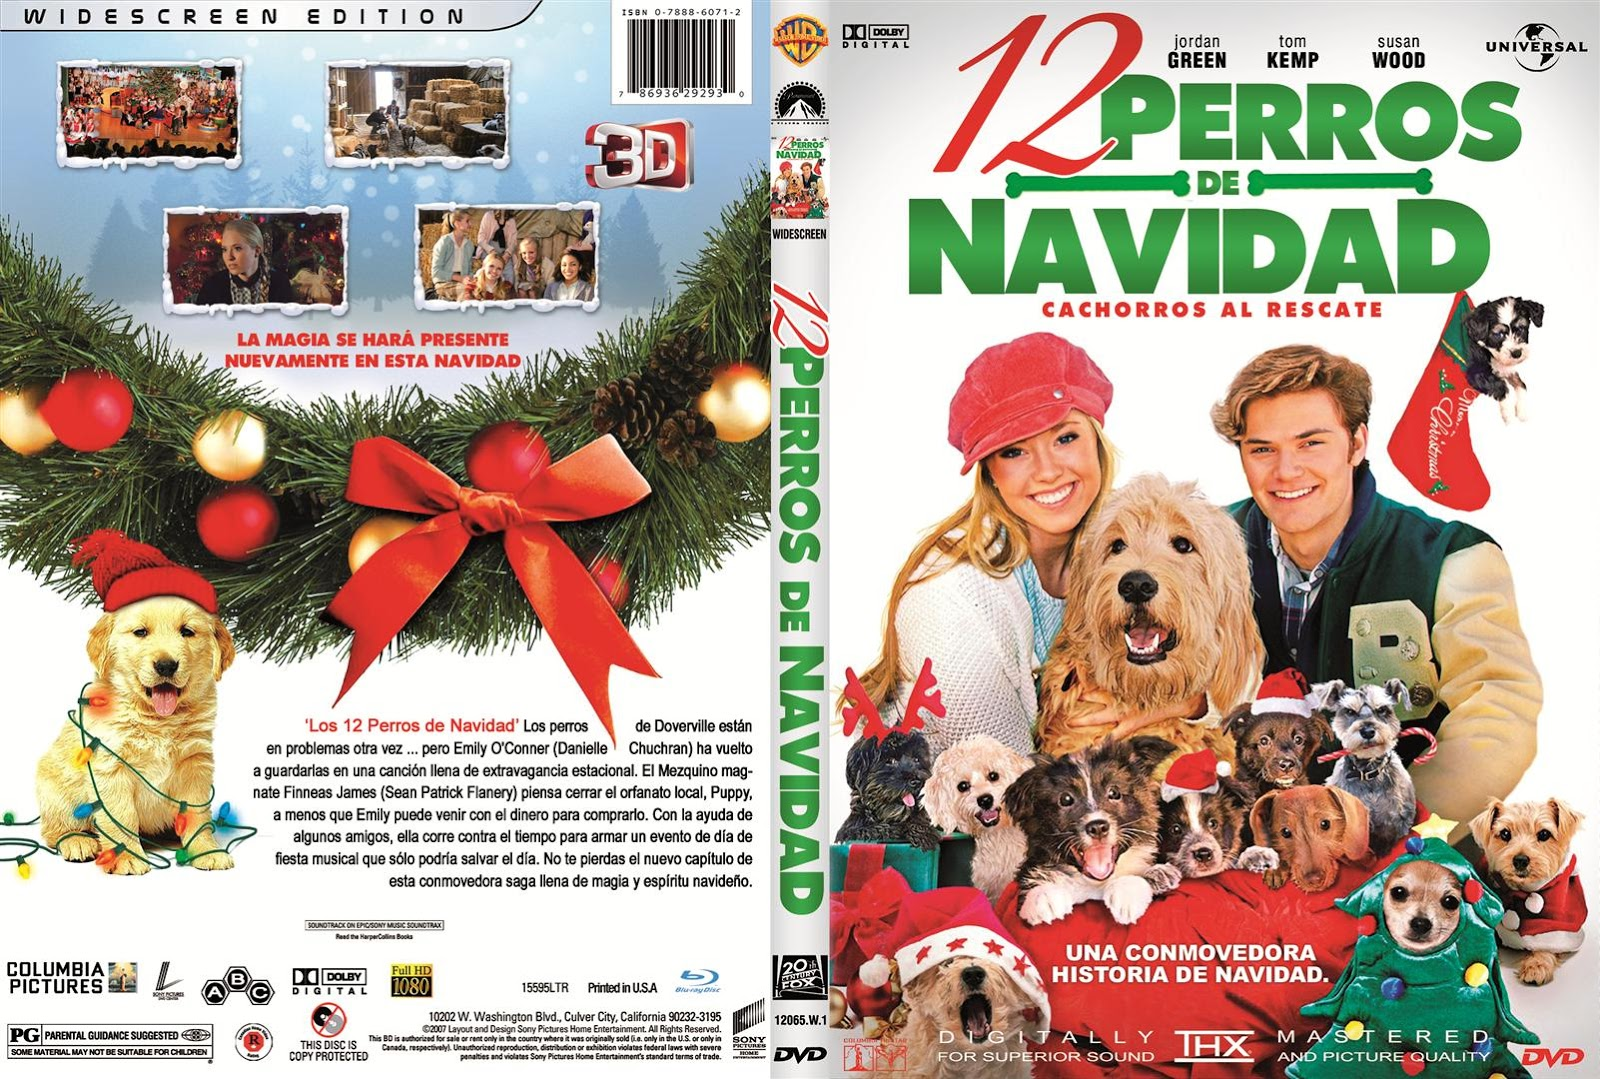 hallmark movies and mysteries one of the 12 original movies of christmas12 christmas wishes for my dog 2012 dvd - 12 Wishes Of Christmas